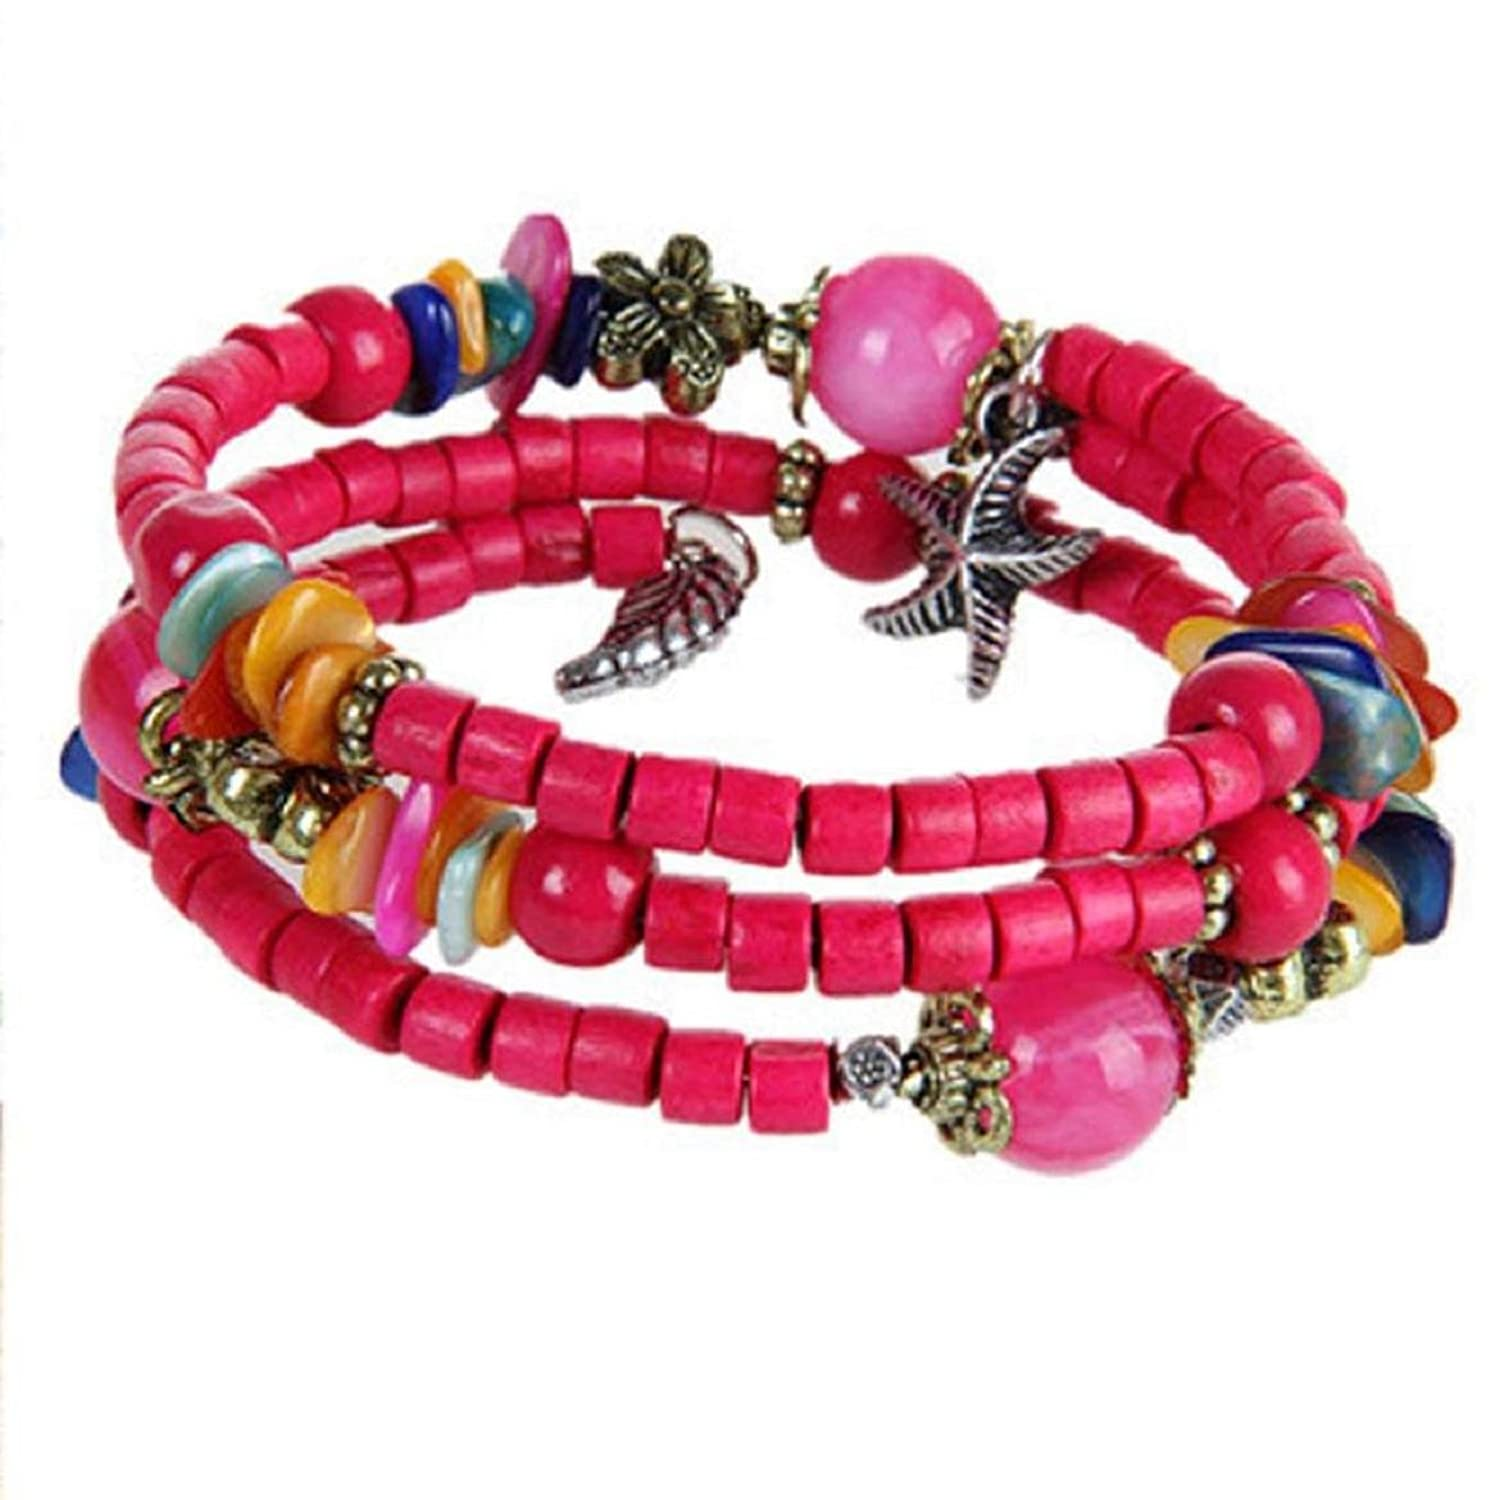 SusenstoneWomen Multilayer Wooden Bracelets (Hot Pink)